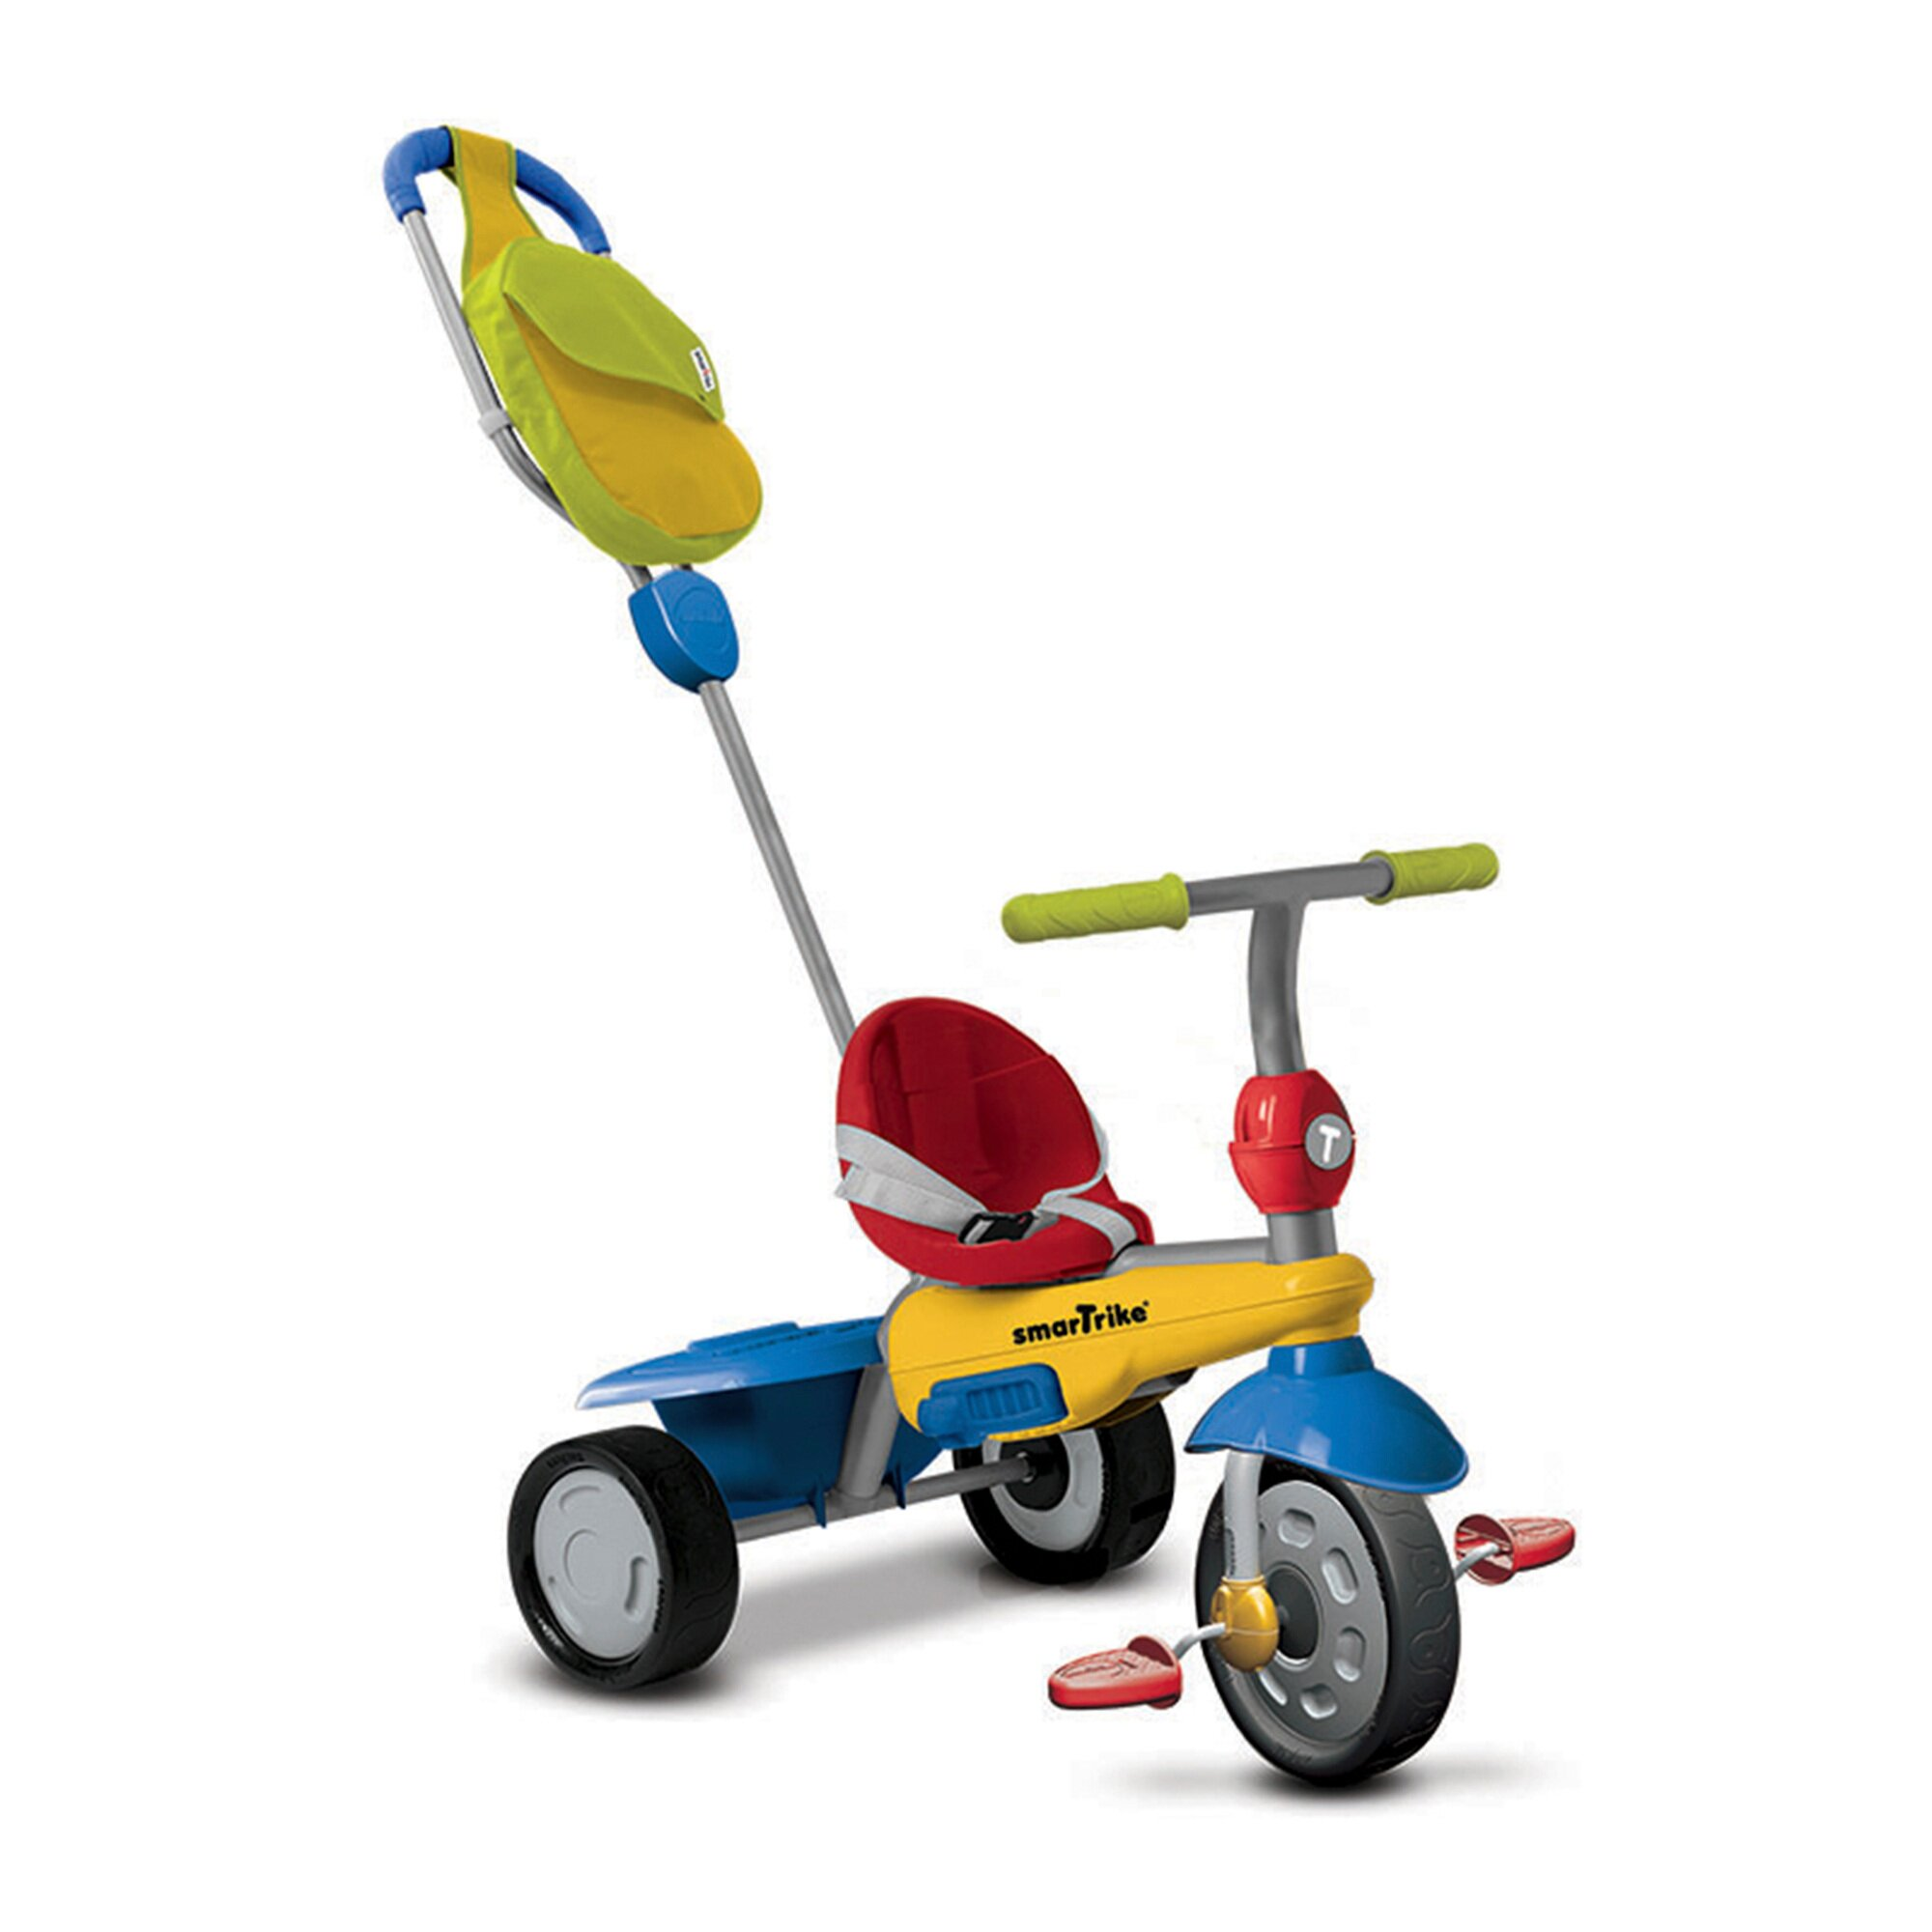 smartrike-dreirad-breeze-gl-touch-steering-3-in-1, 76.99 EUR @ babywalz-de